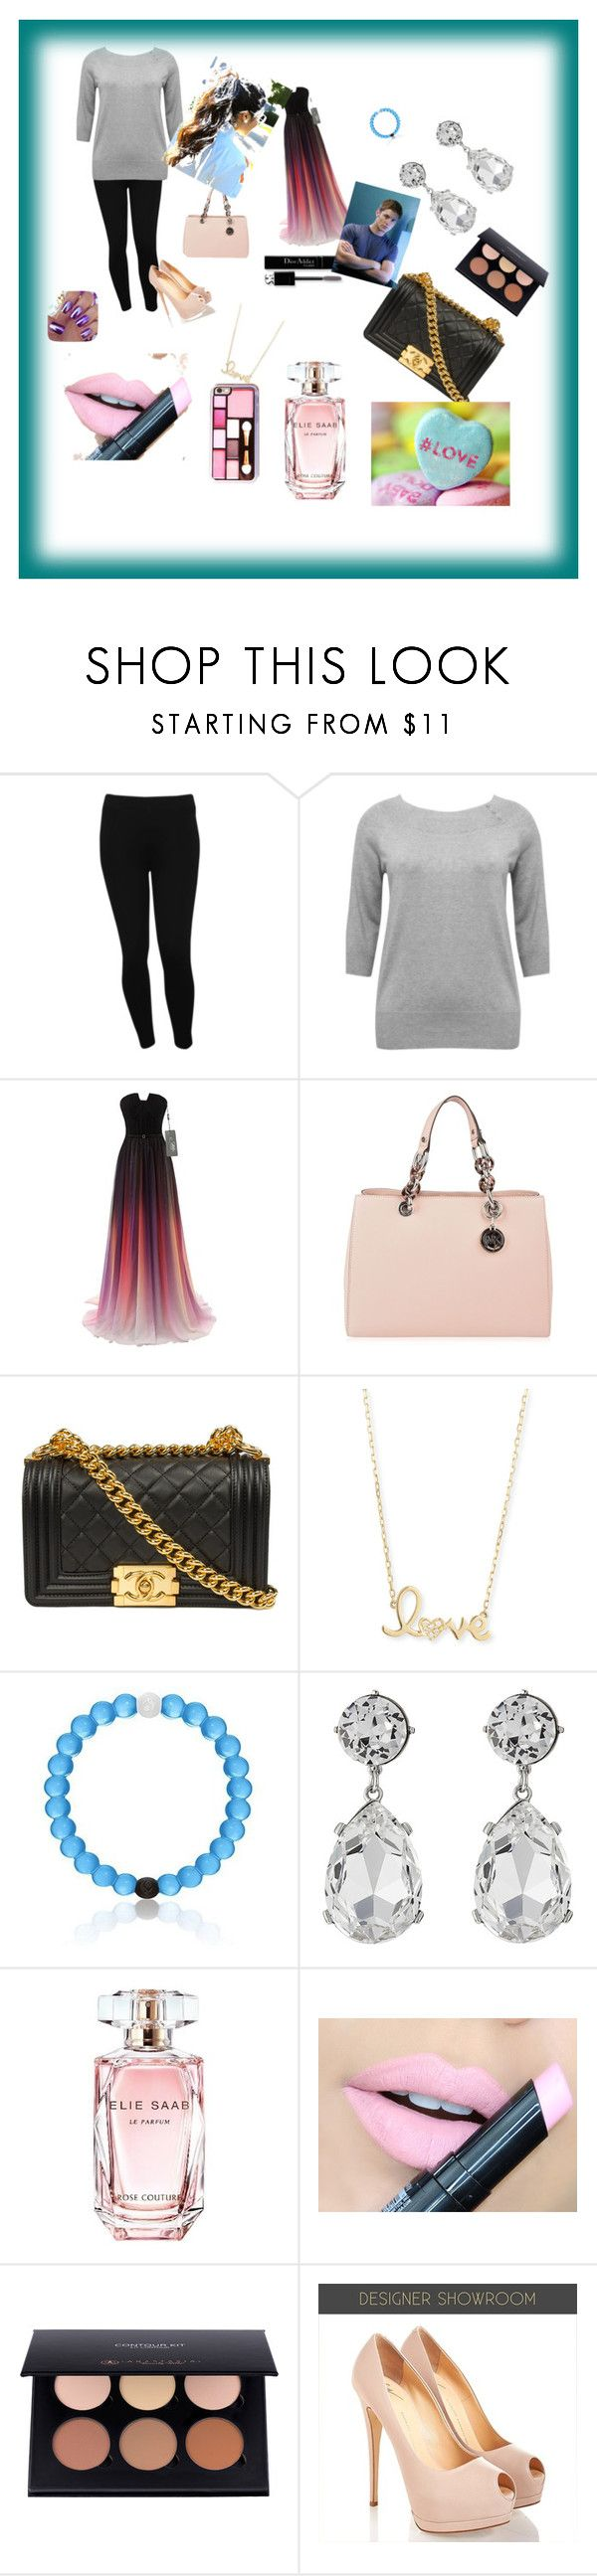 """""""Everything a girl needs"""" by antonella6666j on Polyvore featuring M&Co, MICHAEL Michael Kors, Sydney Evan, Kenneth Jay Lane, Elie Saab, Fiebiger and Christian Dior"""